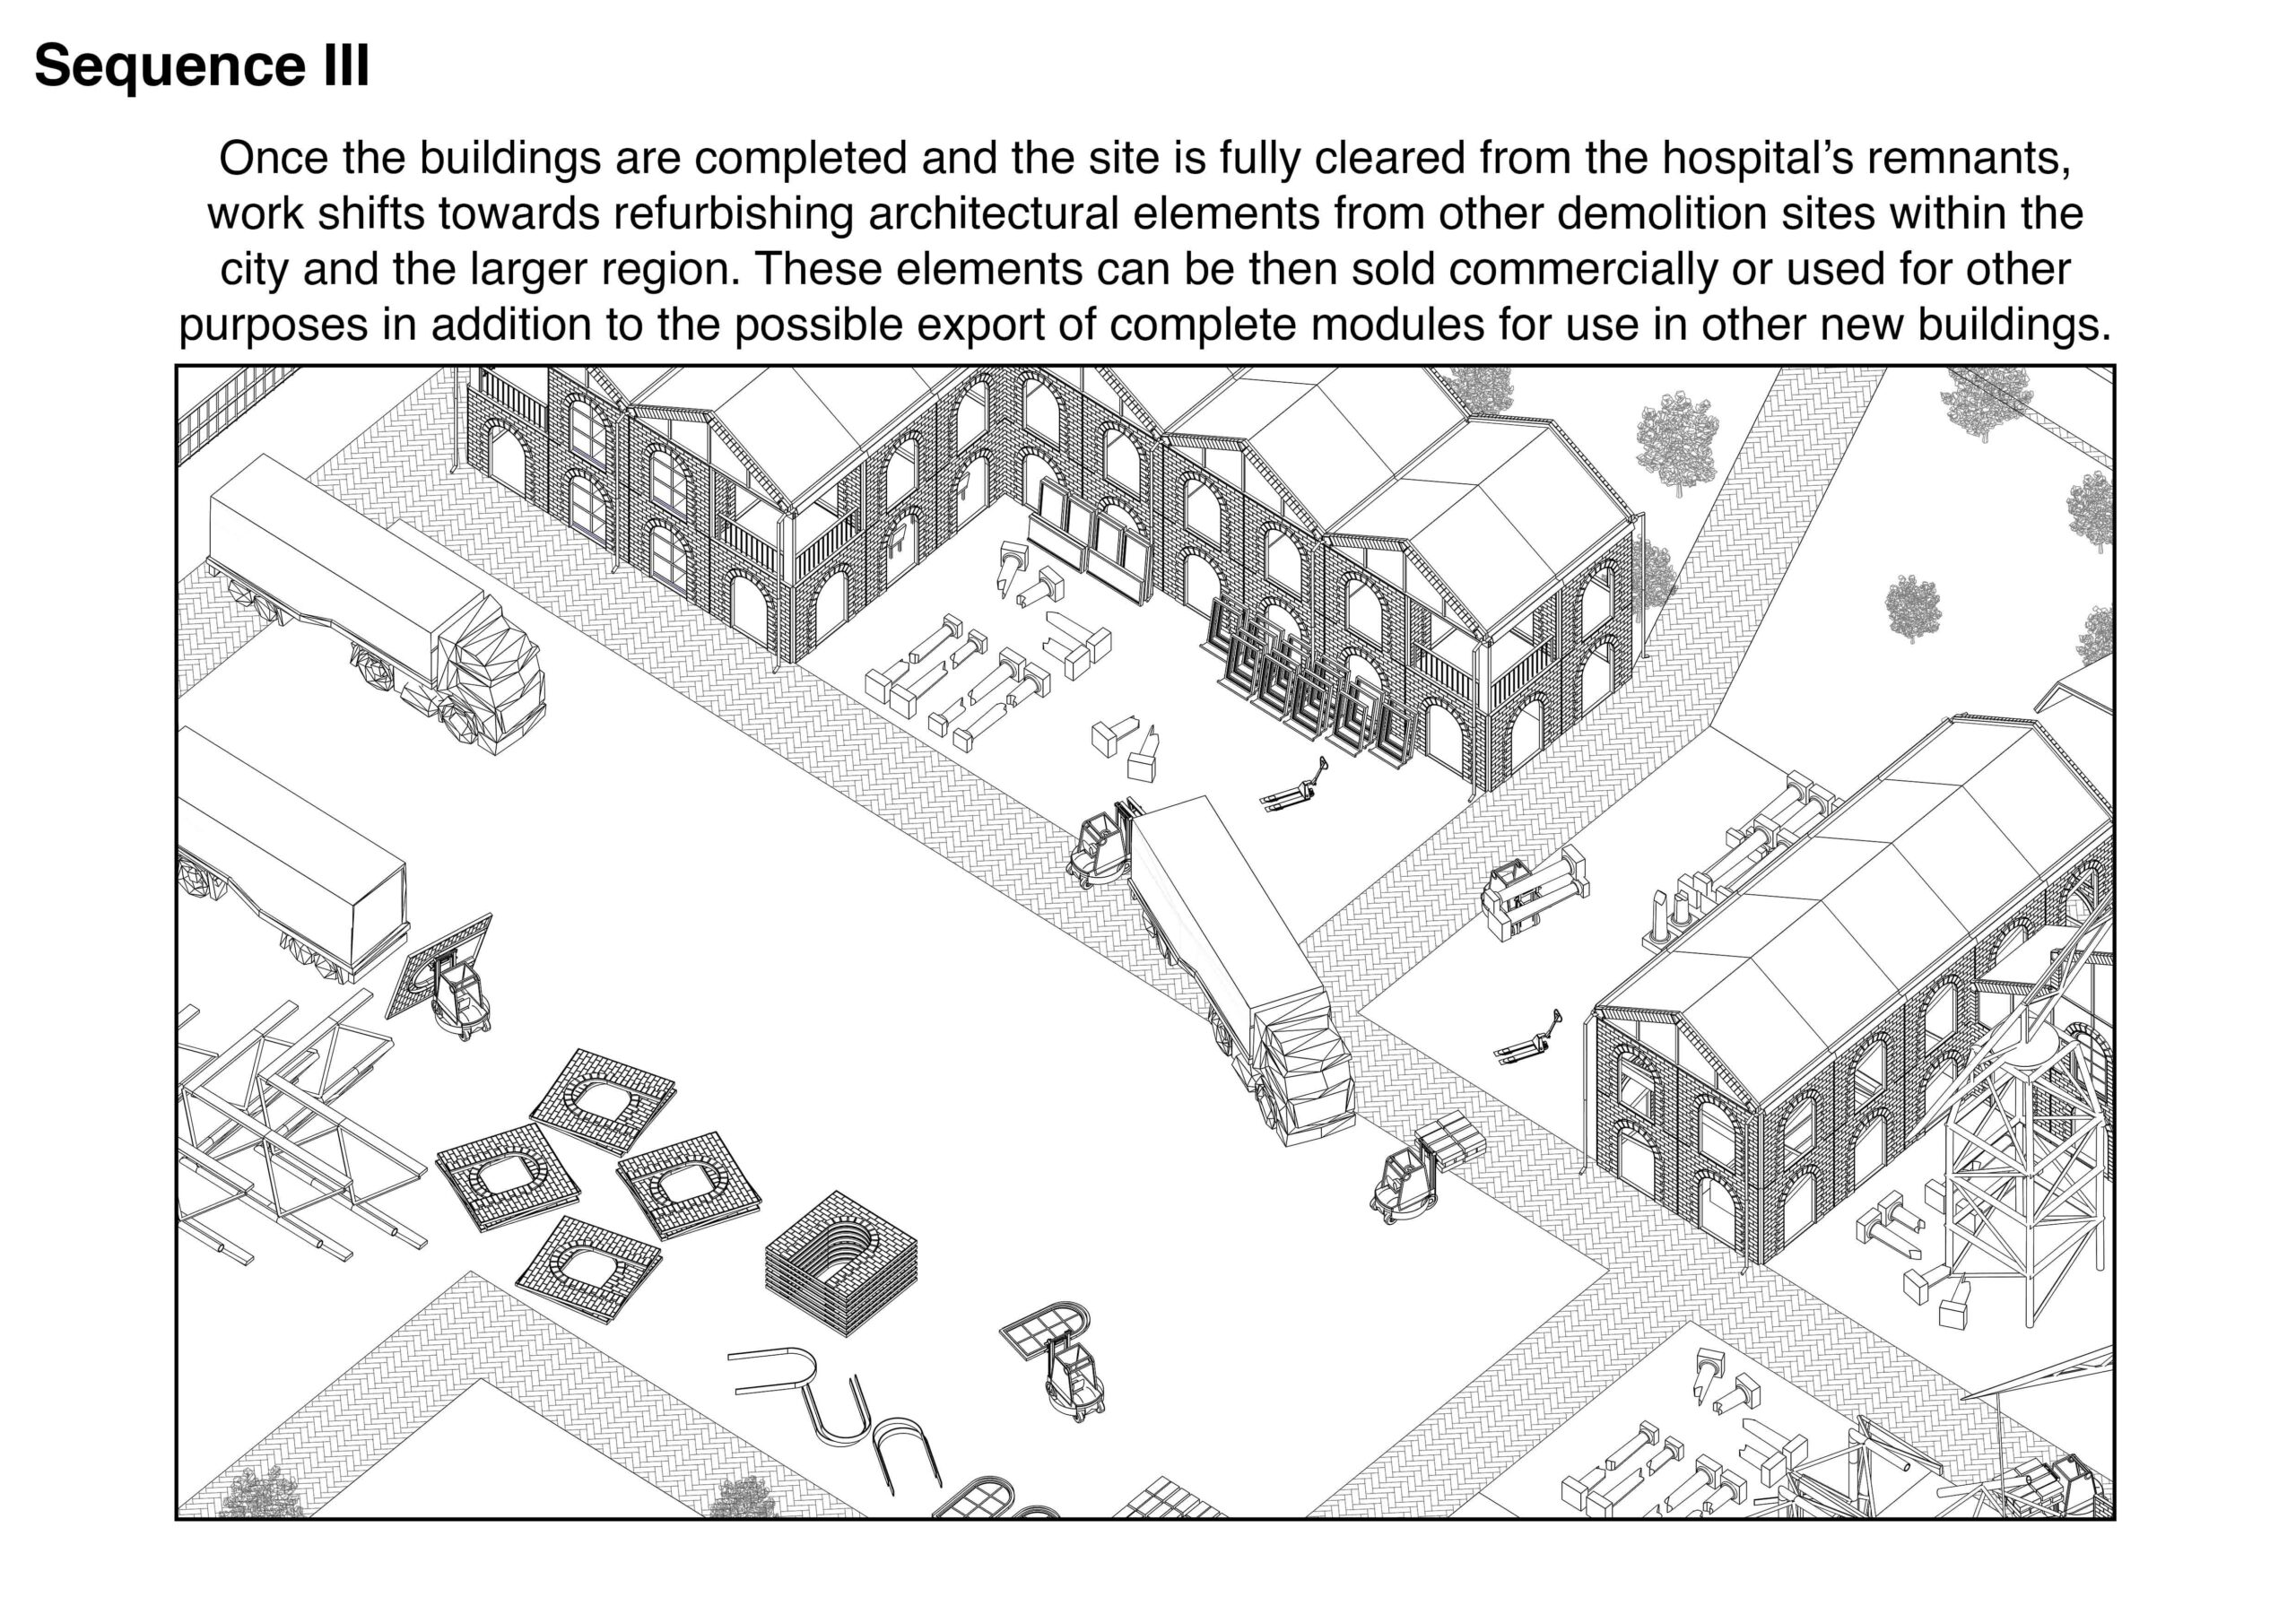 Portfolio Page of an axonometric drawing that shows the third stage of the process, where buildings are completed and the site is fully cleaned from the hospitals remnants and work shifts towards refurbishing elements from other demolition sites within the city and larger region.